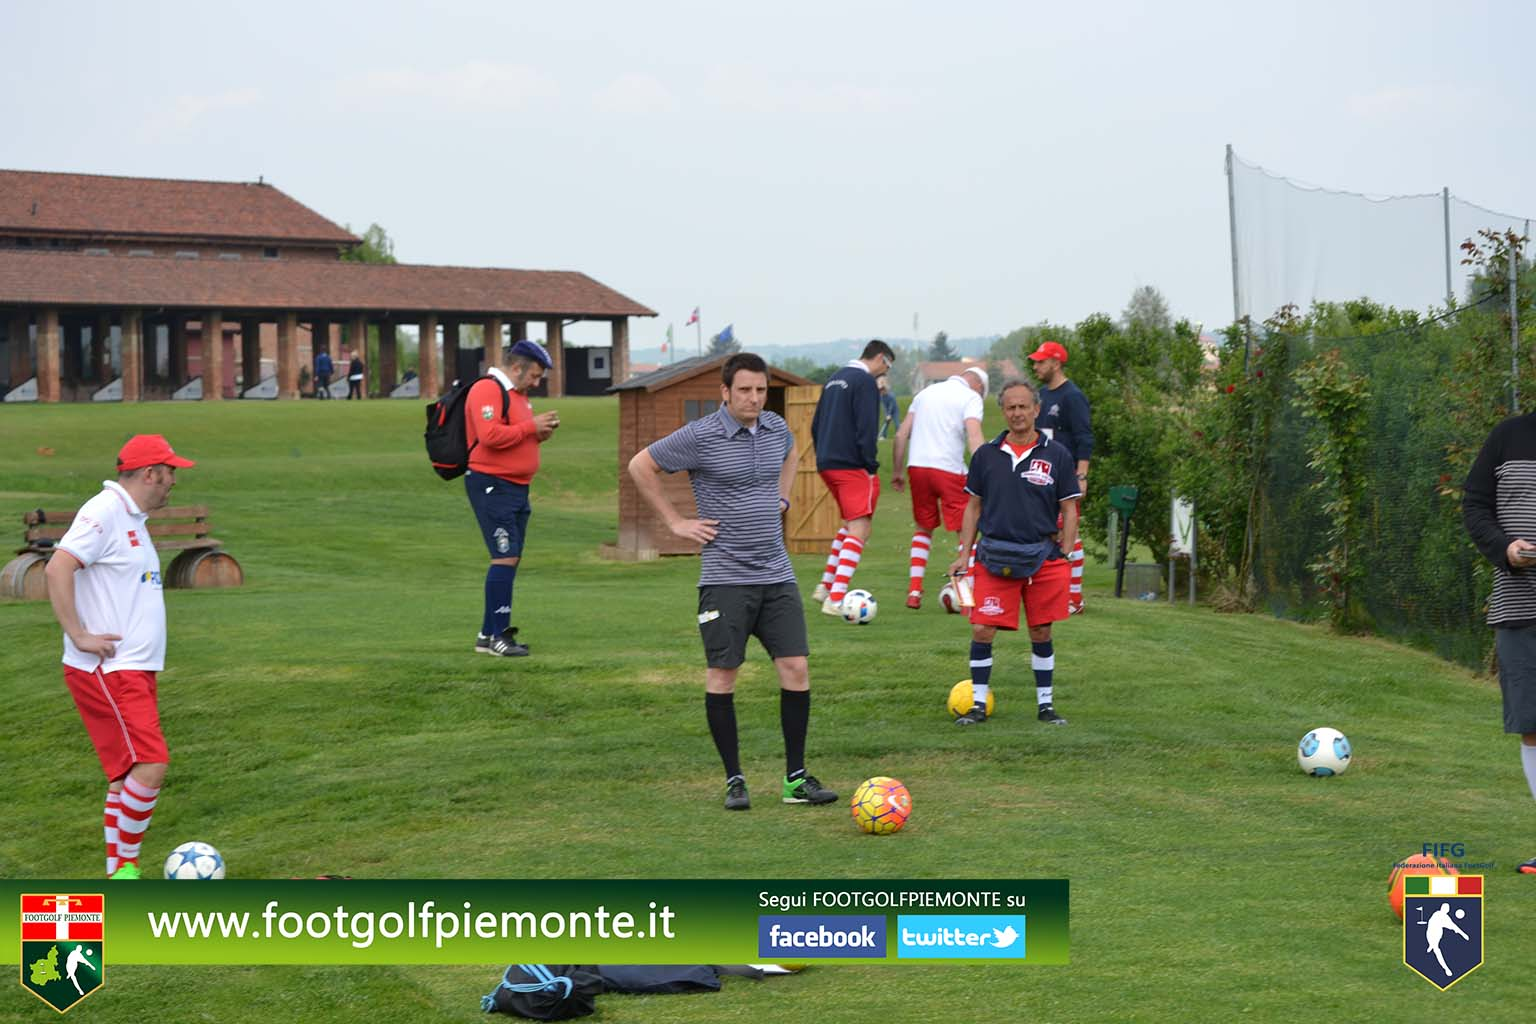 FOTO 9 Regions' Cup Footgolf Piemonte 2016 Golf Città di Asti (At) 30apr16-4